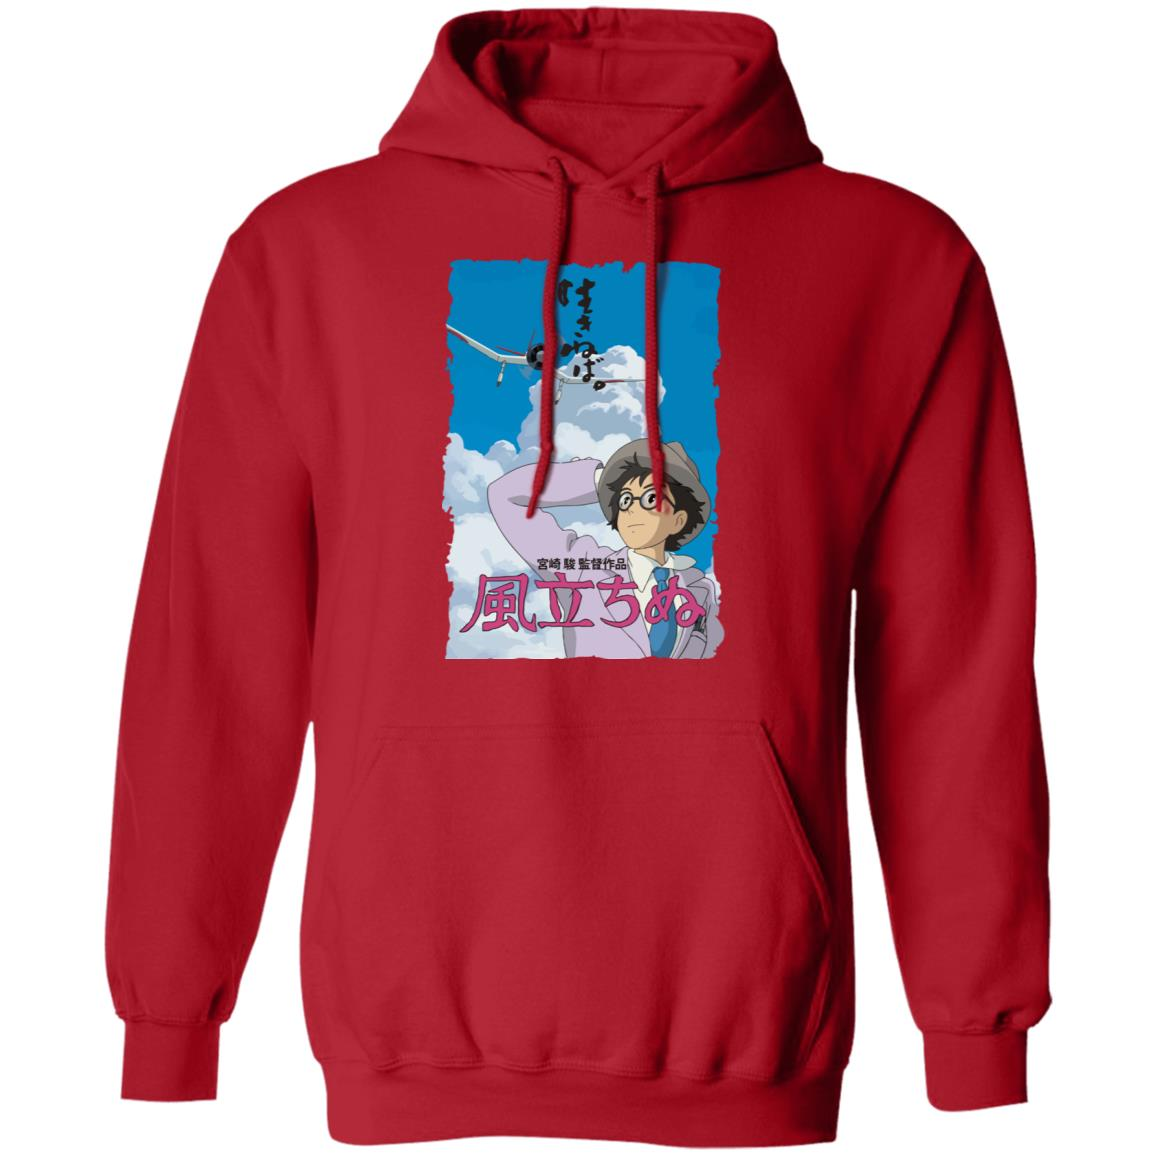 The Wind Rises Poster Hoodie